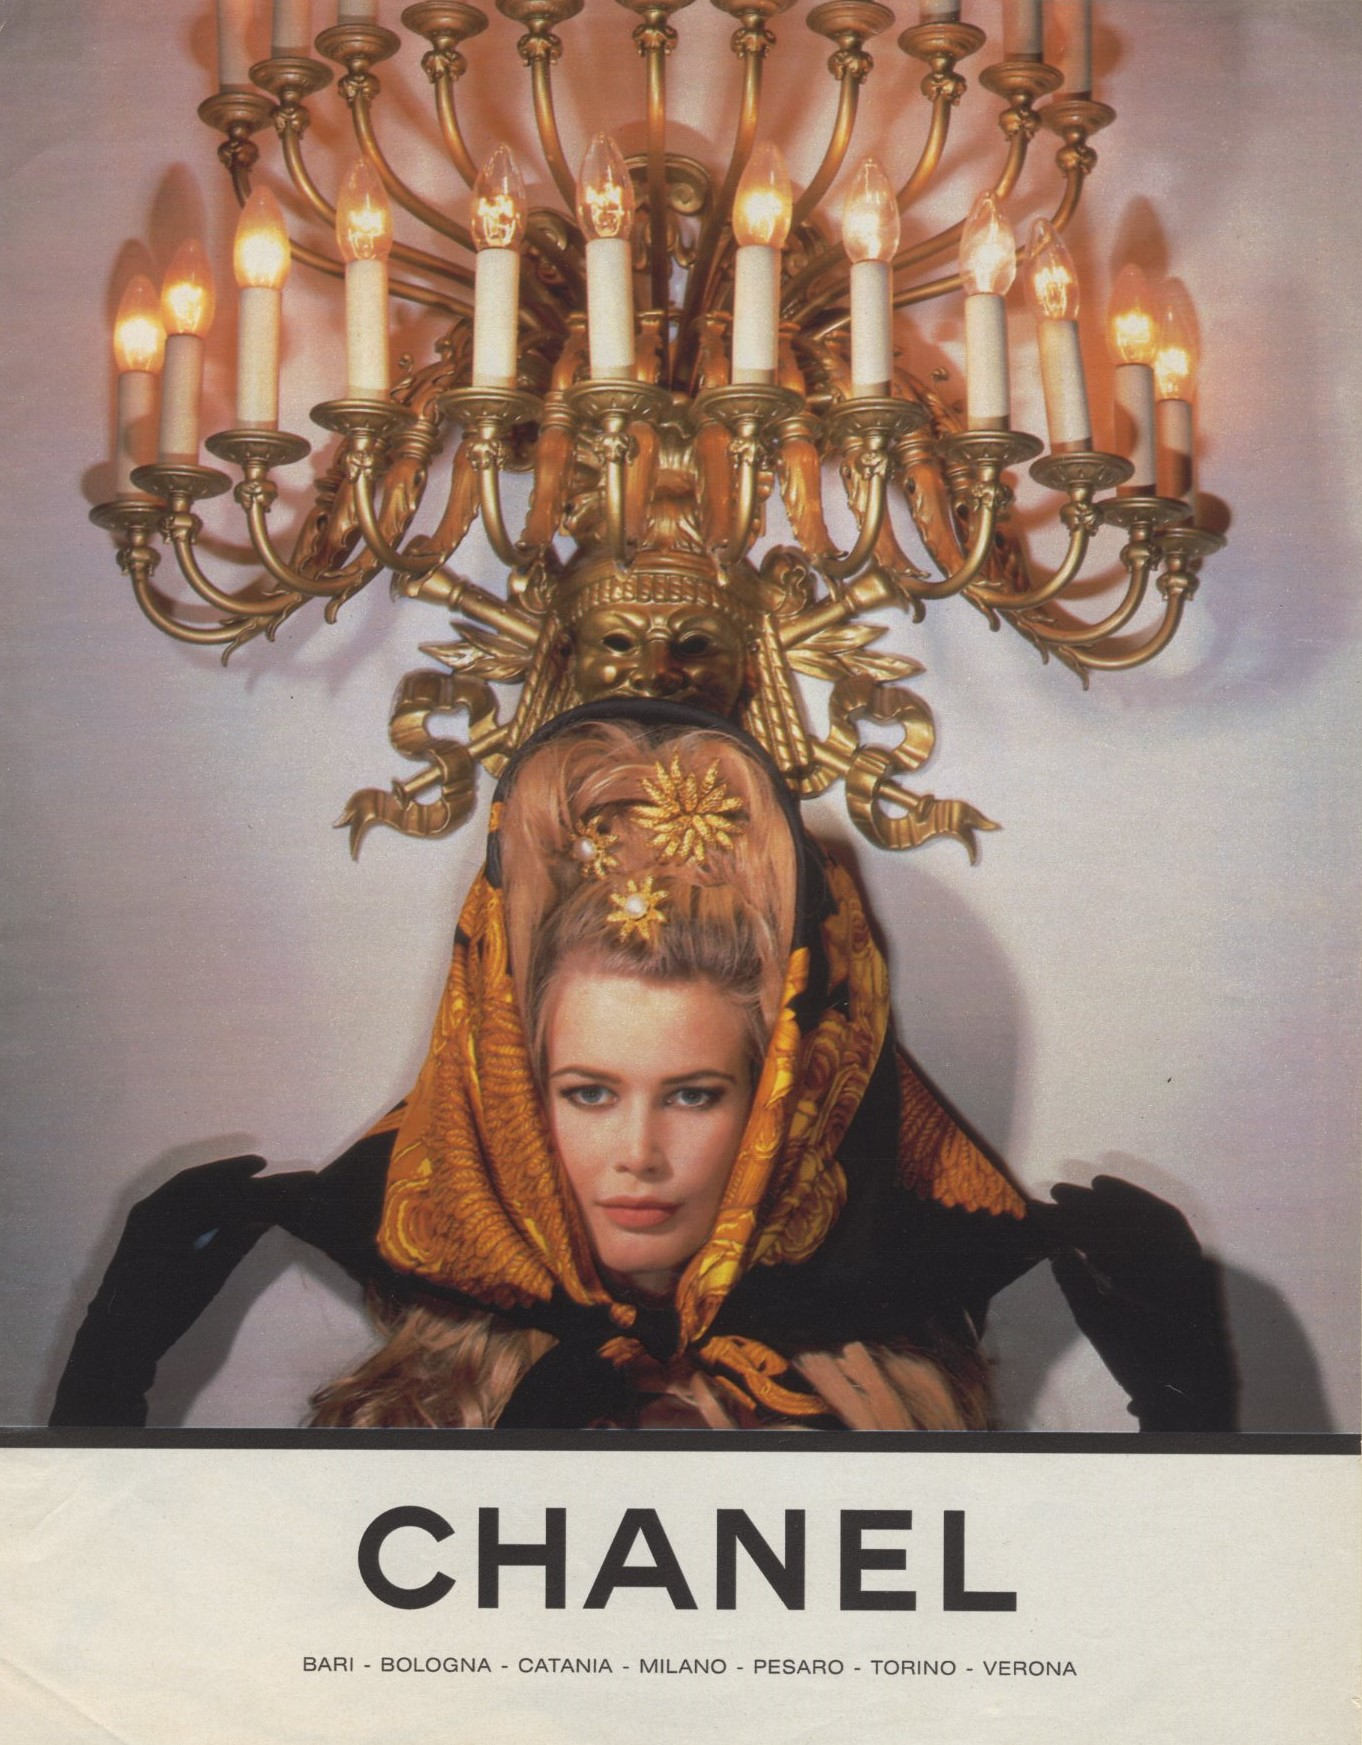 CLAUDIA SCHIFFER | CHANEL AD | PHOTOGRAPHY KARL LAGERFELD | 1990s